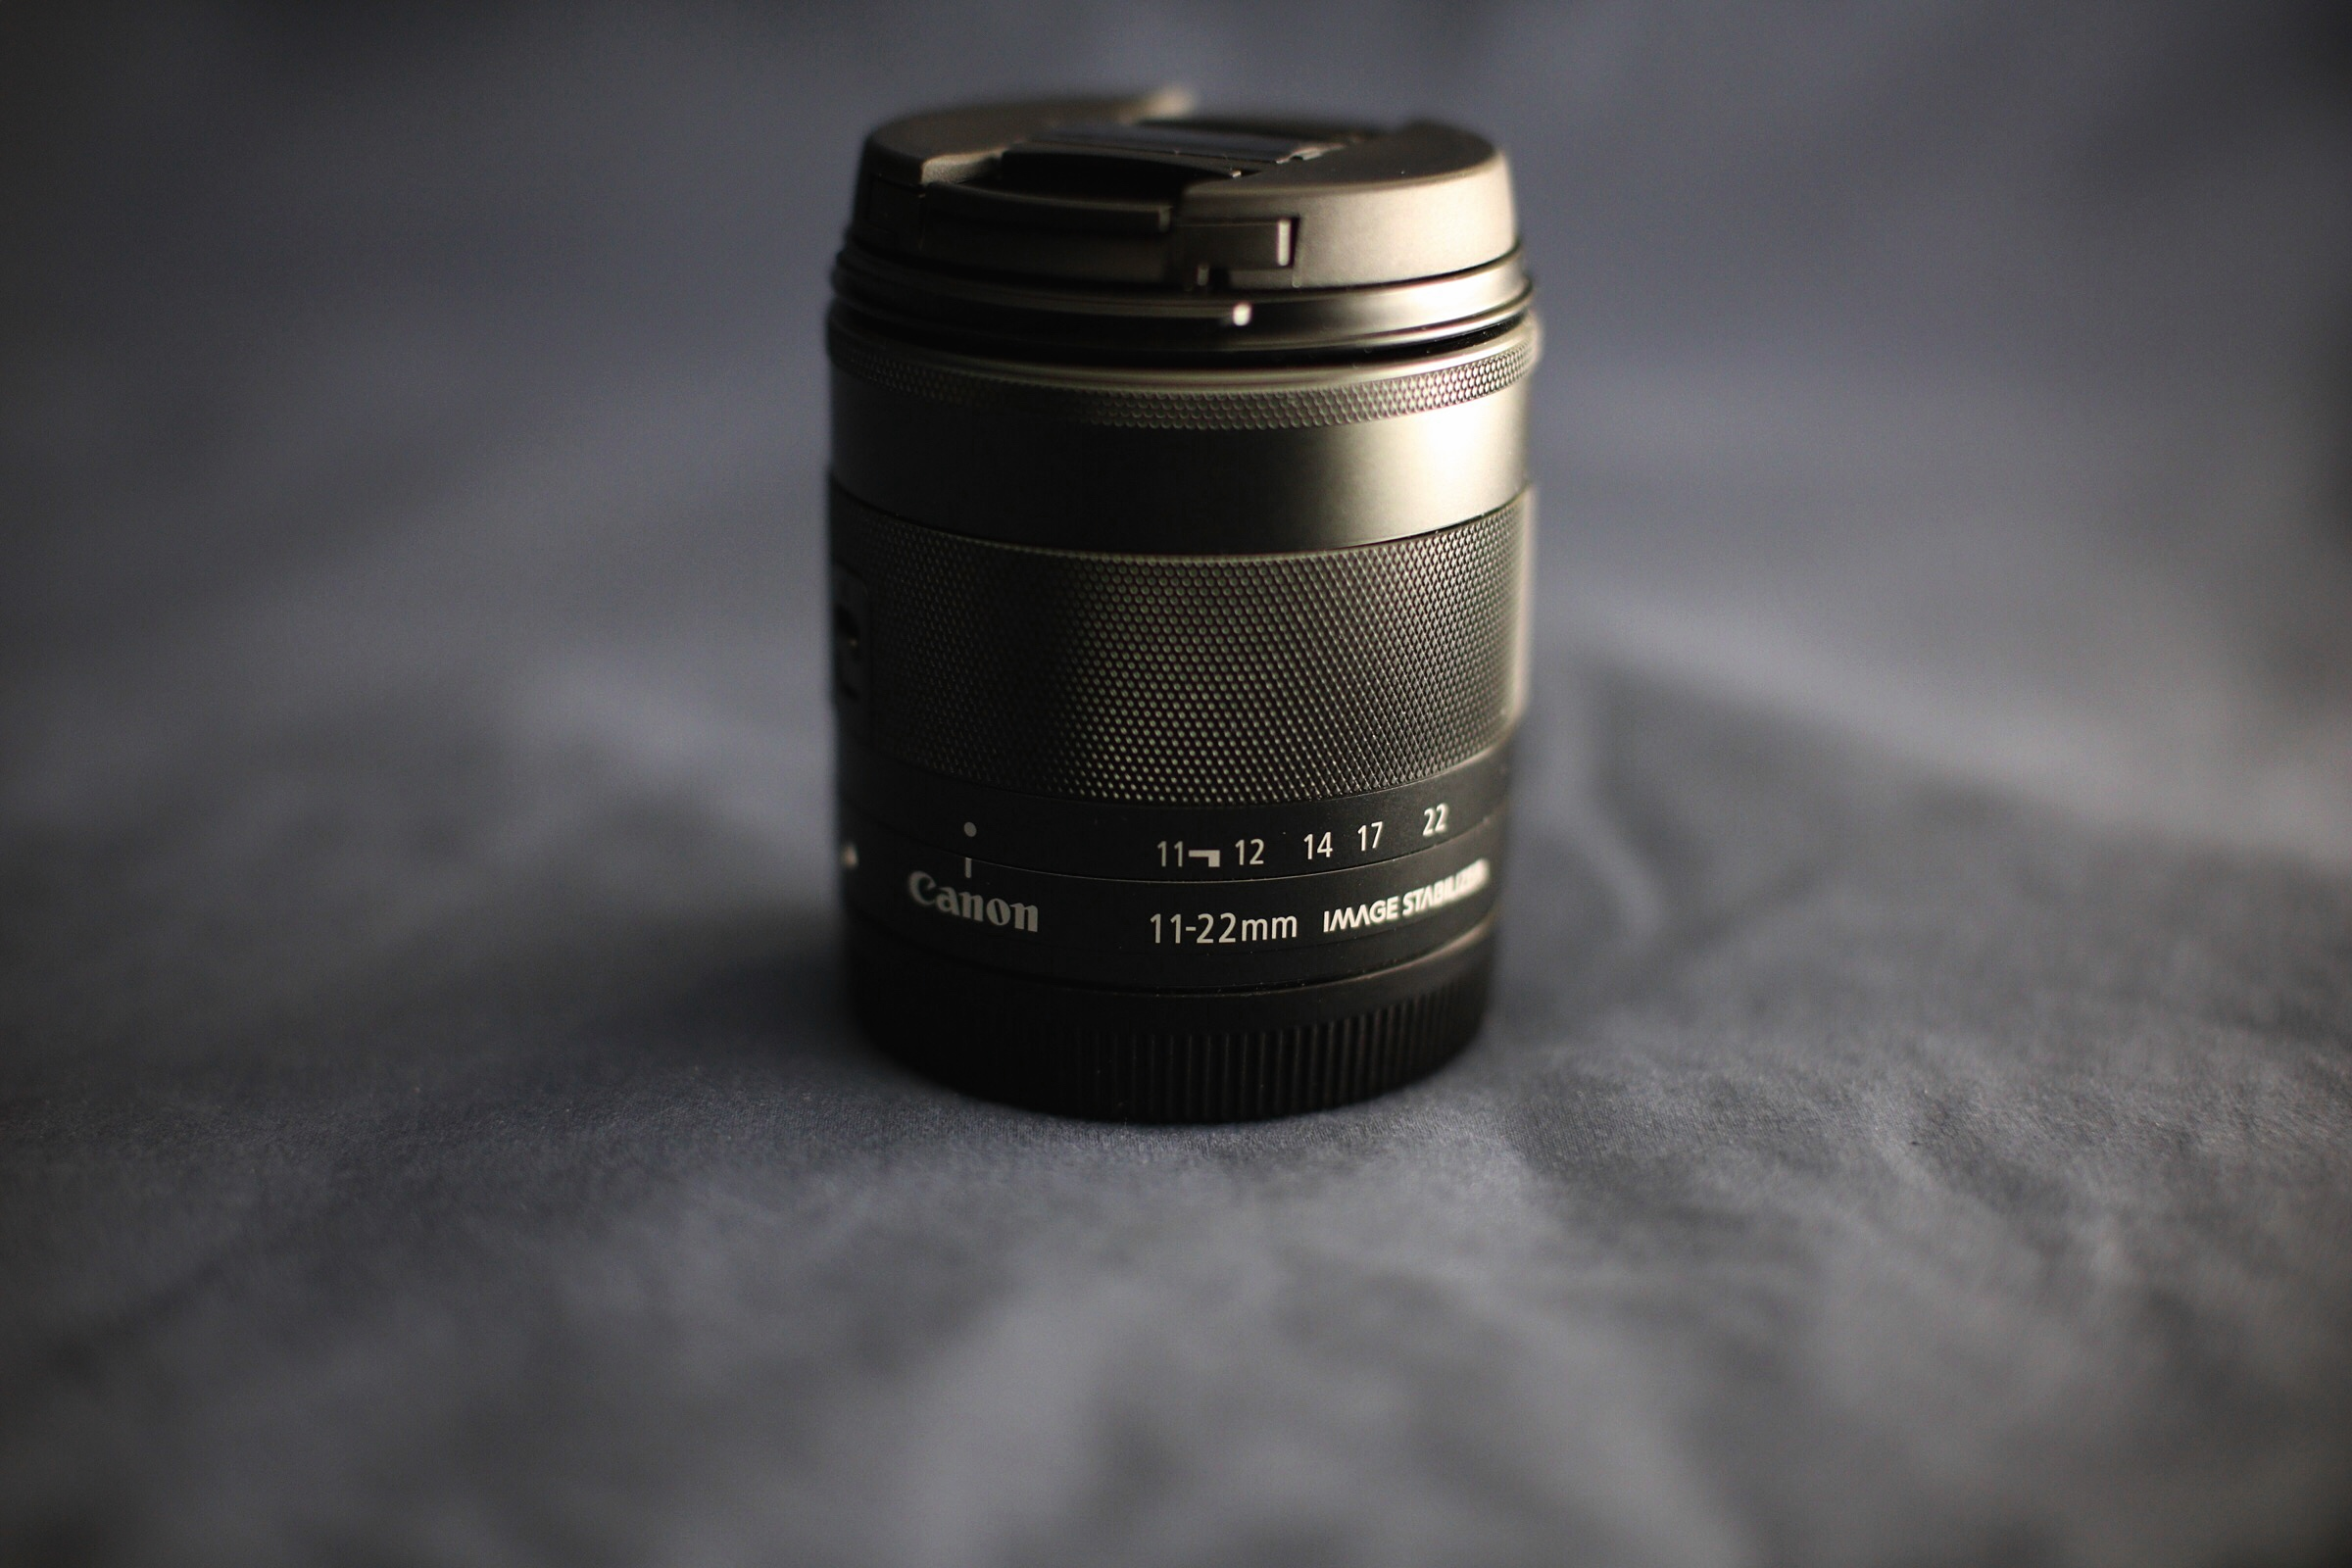 The EF-M 11-22mm IS lens is one of the best preforming lenses in the EF-M lineup.